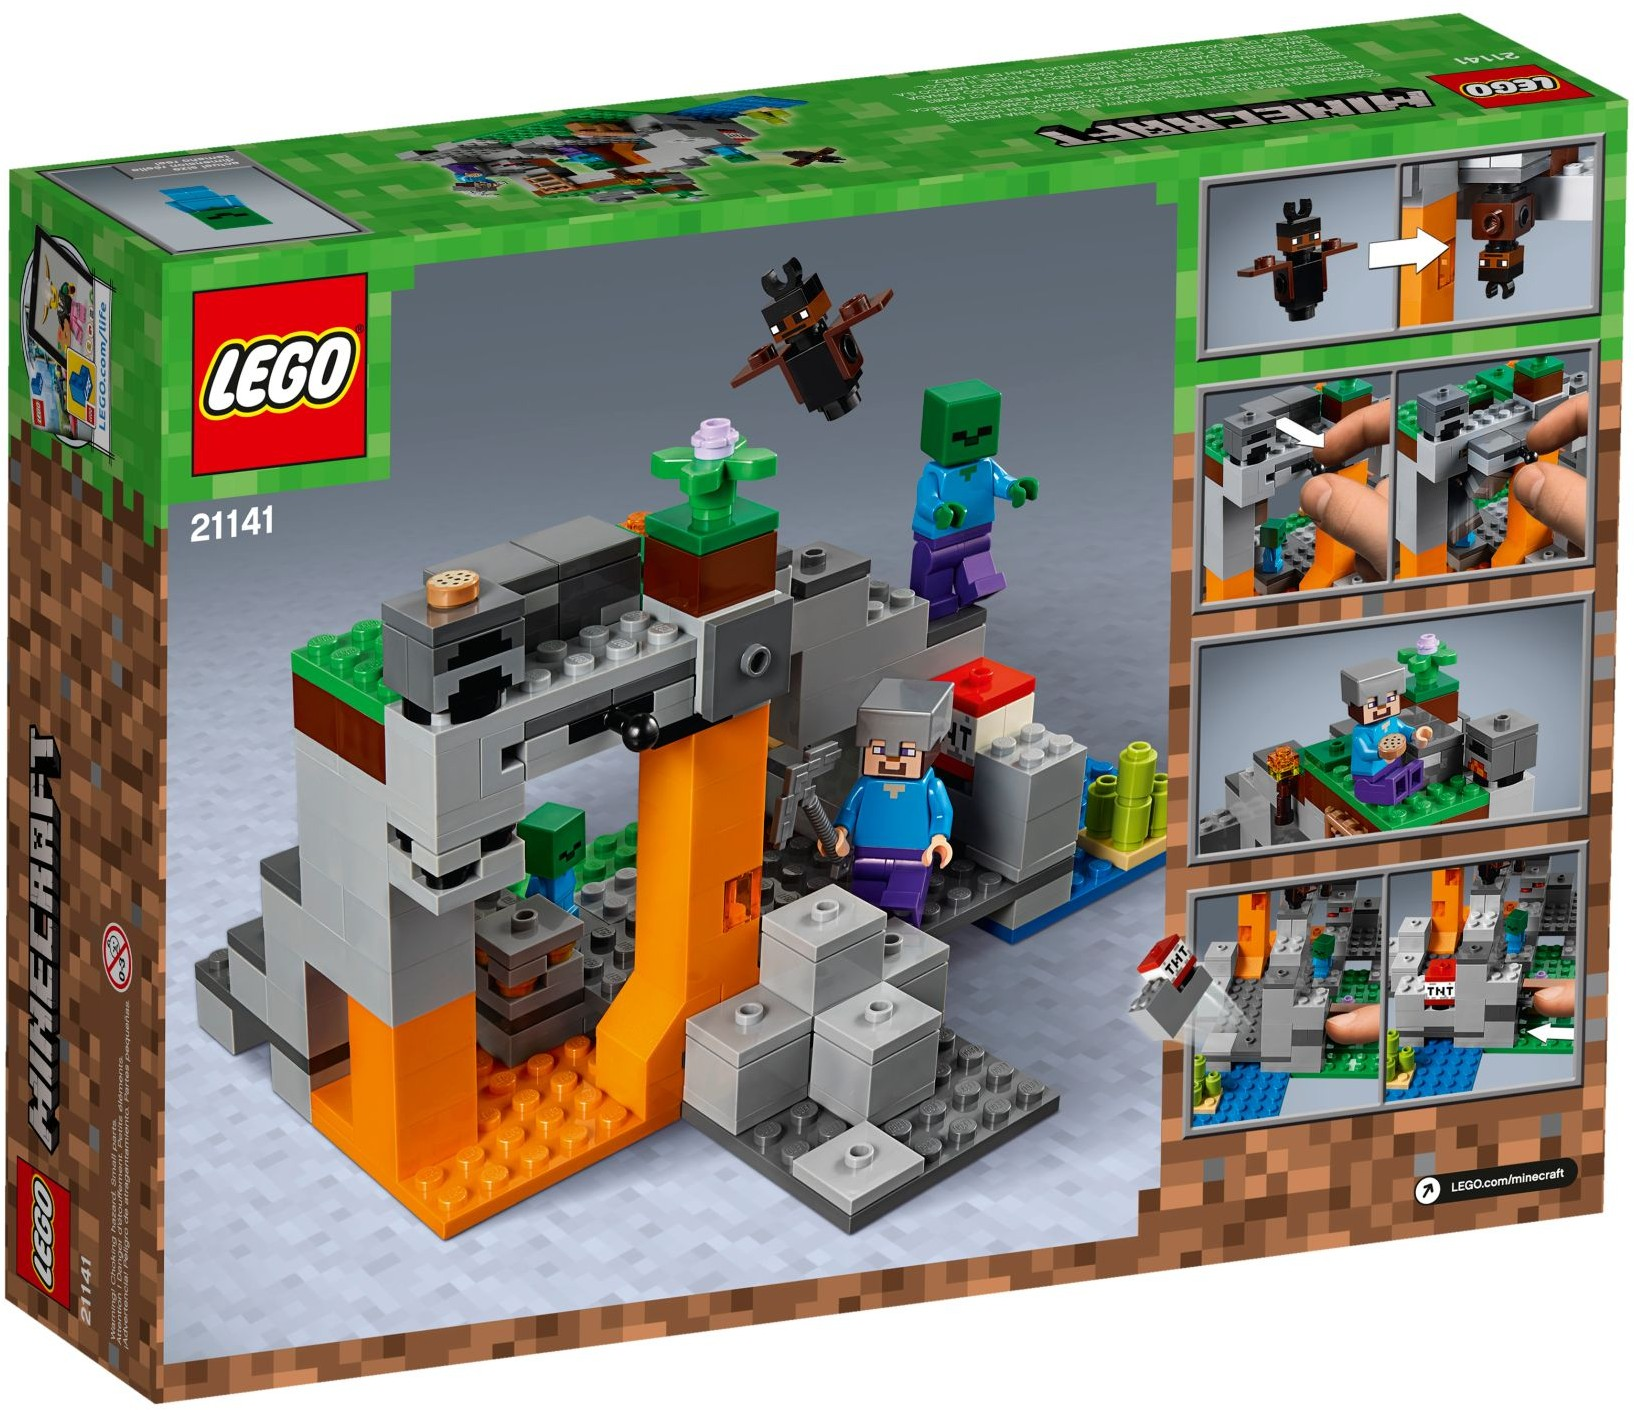 21141 LEGO Minecraft™ the Zombie Cave